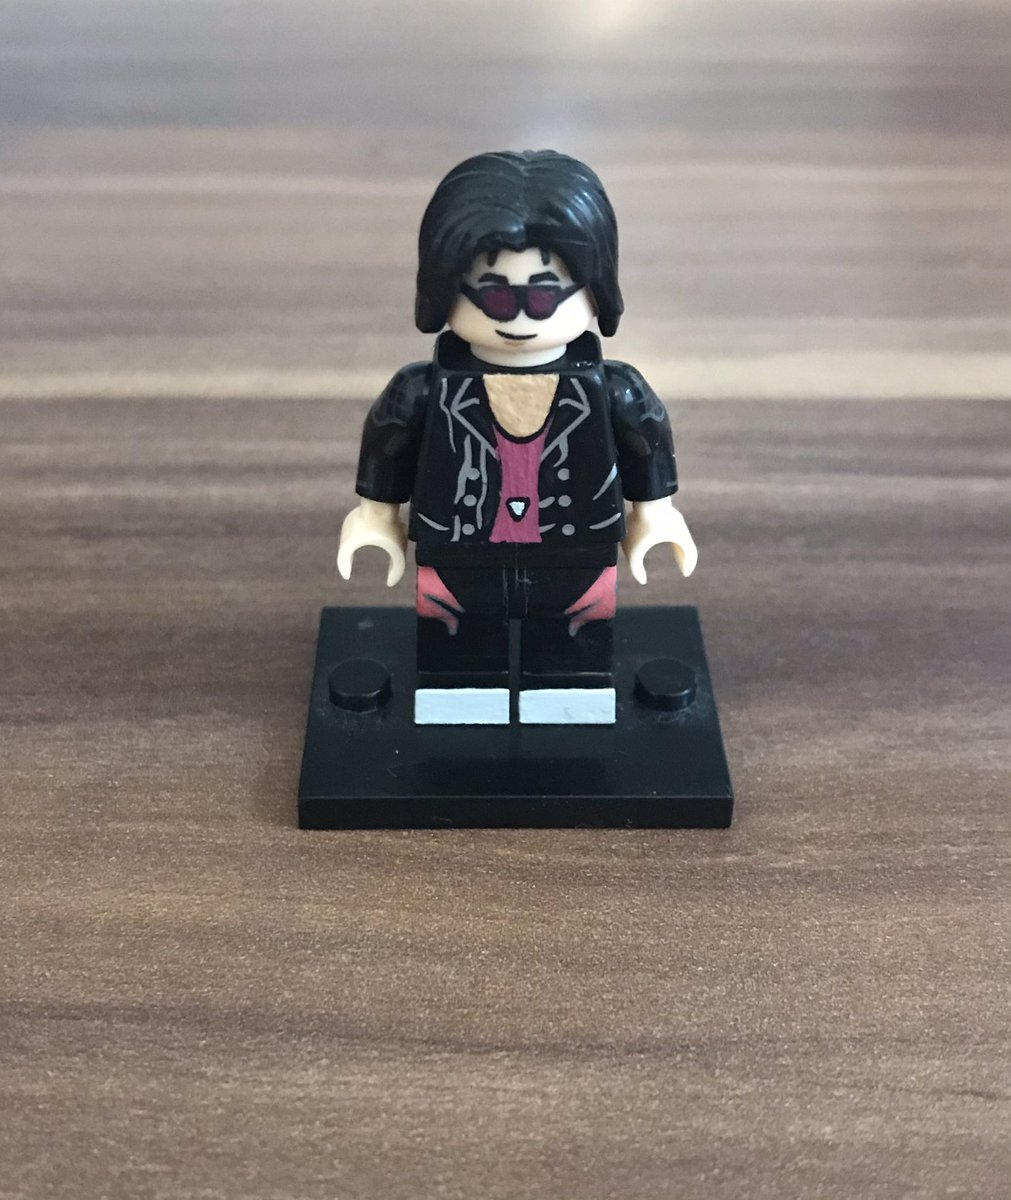 The best there is, the best there was, and the best there ever will be  @BretHart @WWE @90sWWE #WWE #HallOfFame #Legend #wrestling #WrestlingCommunity #WrestlingTwitter #WRESTLINGFOREVER #LEGO #painting #painter #art #hobby #follobackforfolloback #follobackinstantly #FOLLLOW